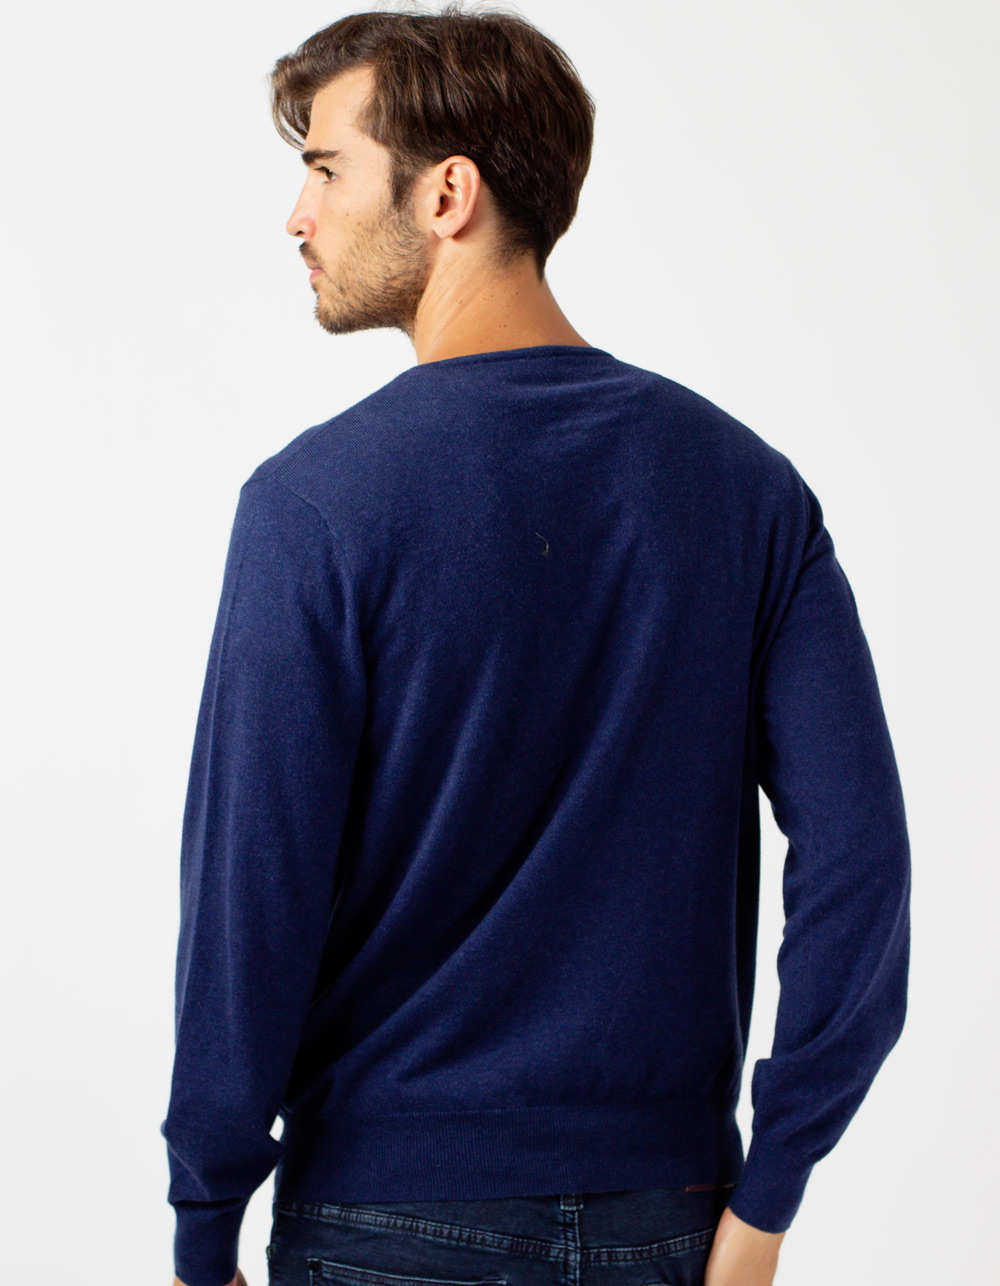 Jersey de cuello pico azul marino - Backside